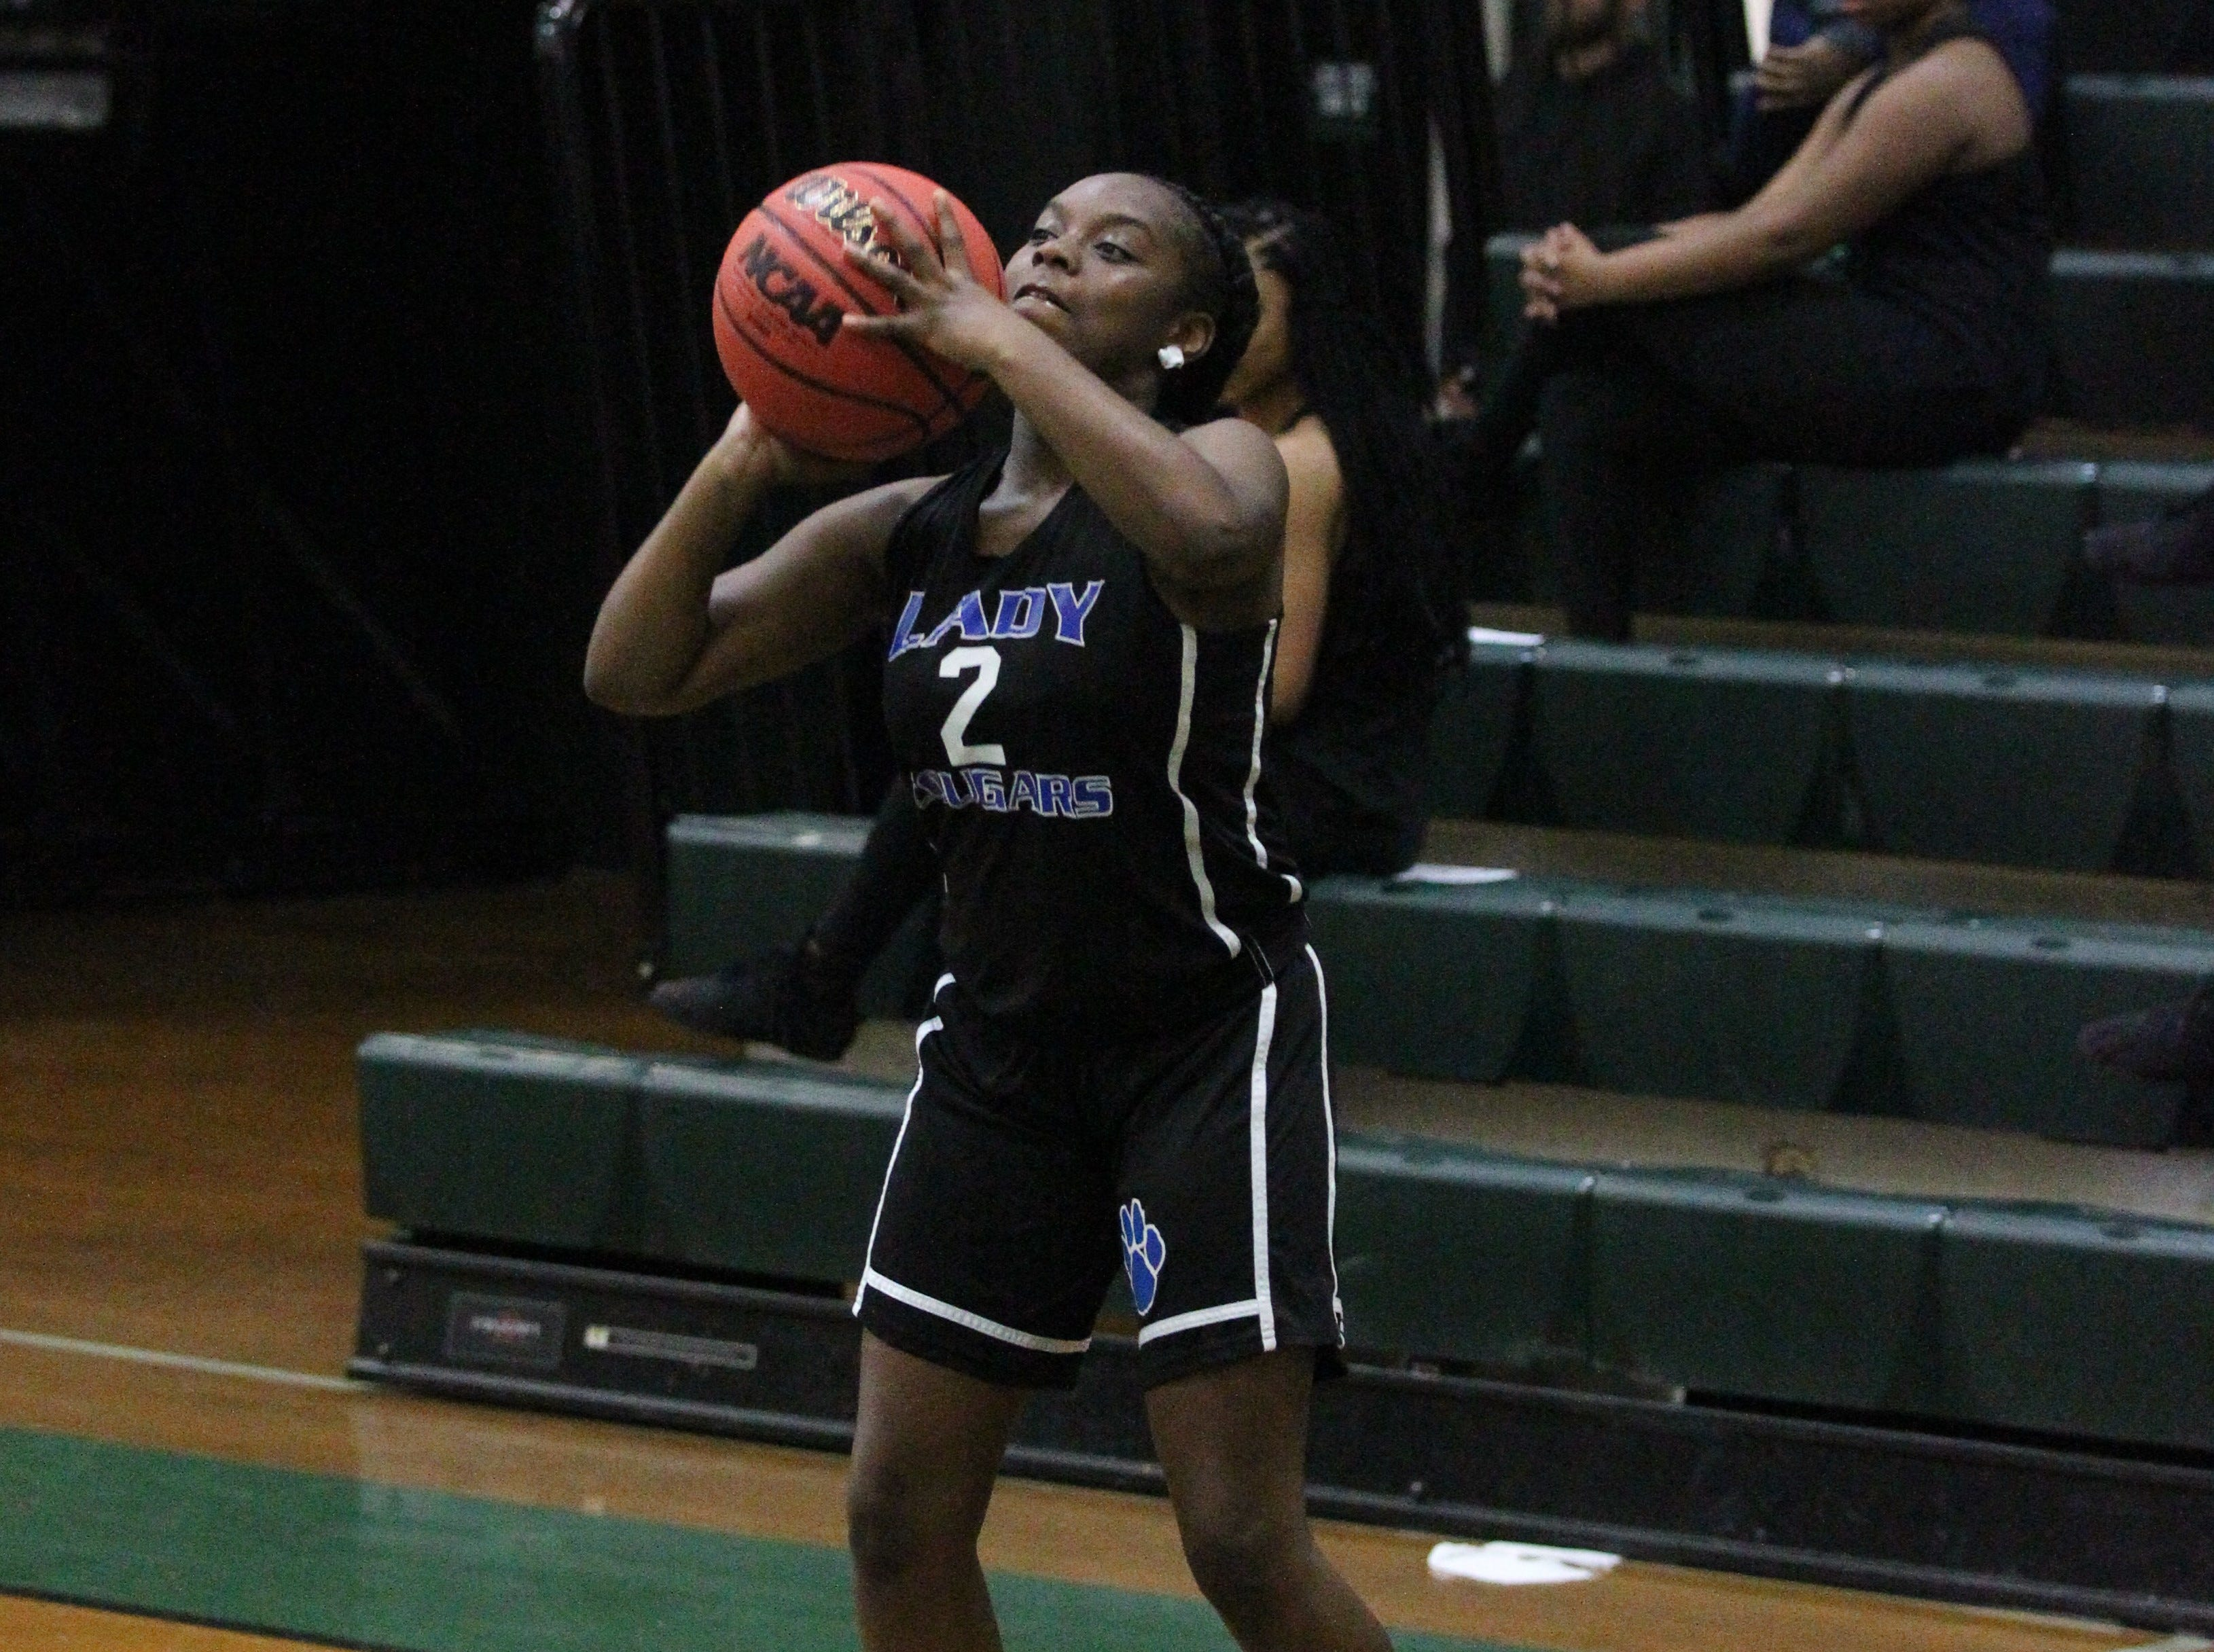 Godby's Kimaniy Dorsey takes a3 -pointer as Lincoln's girls basketball team beat Godby 67-32 on Jan. 29, 2019.